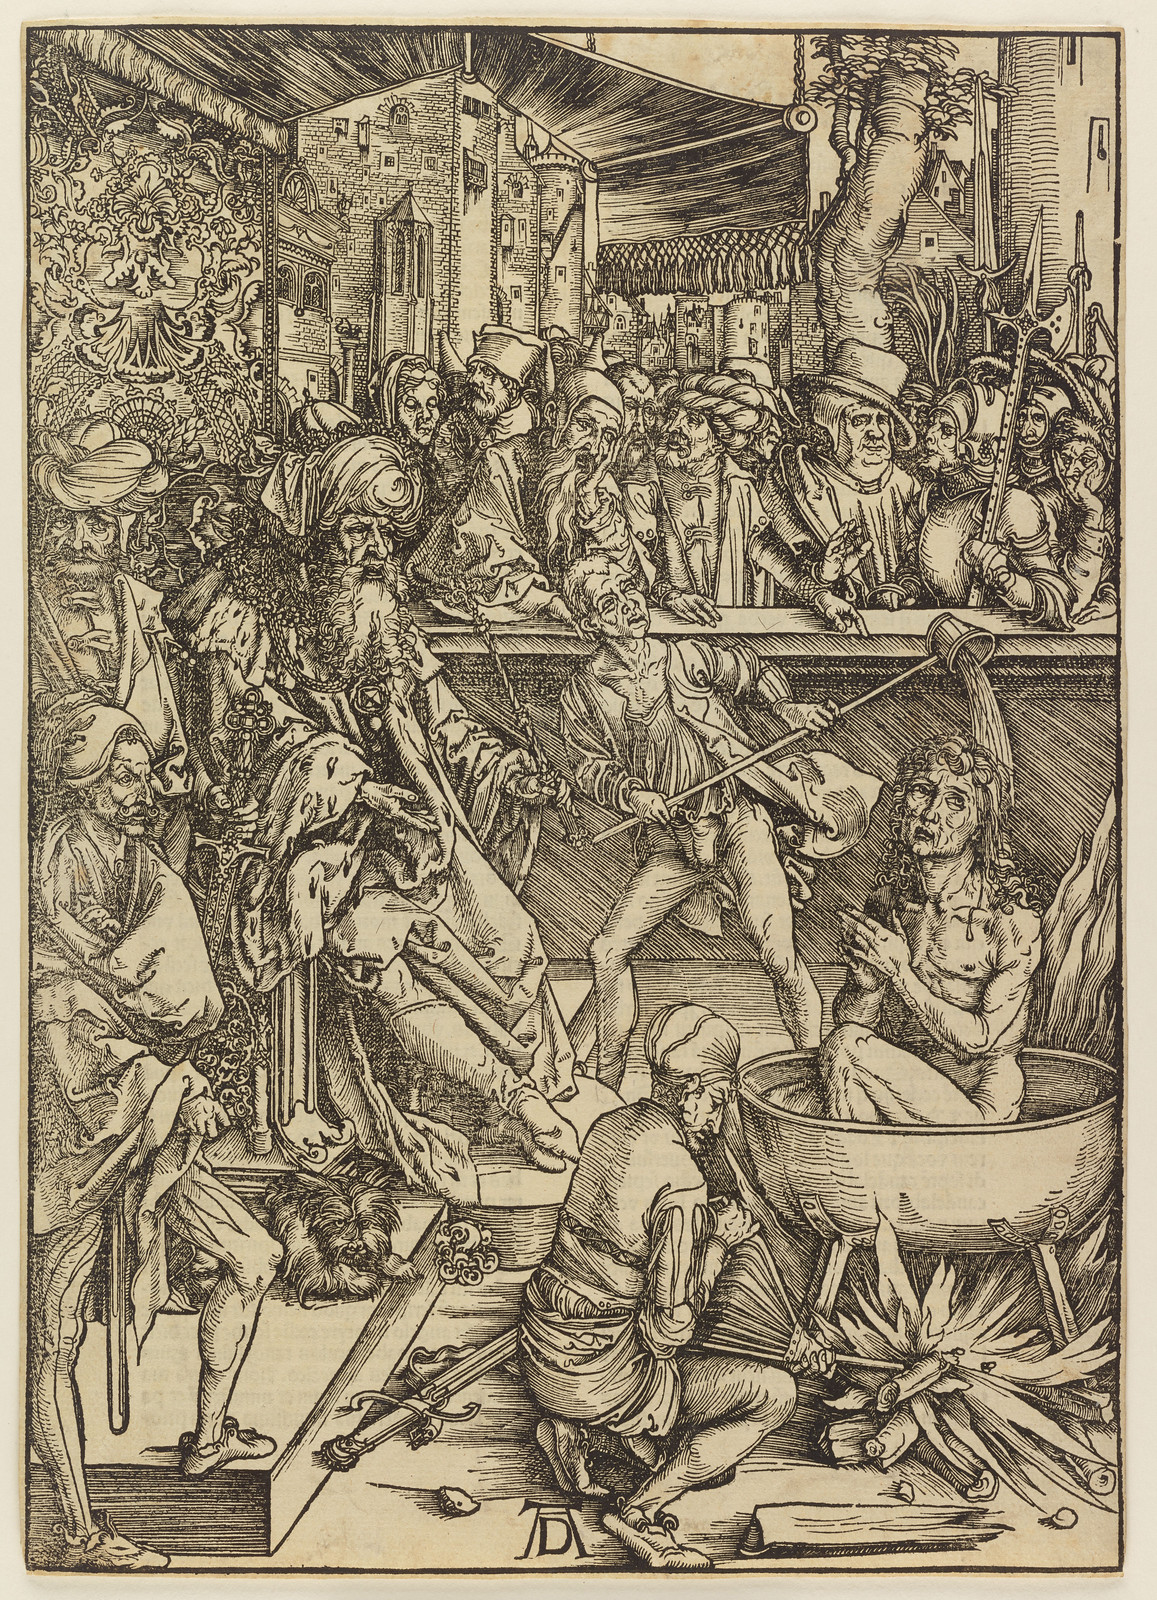 Albrecht Dürer - Martyrdom of St John, Plate one of fifteen from the Latin edition of The Apocalypse series, printed 1511